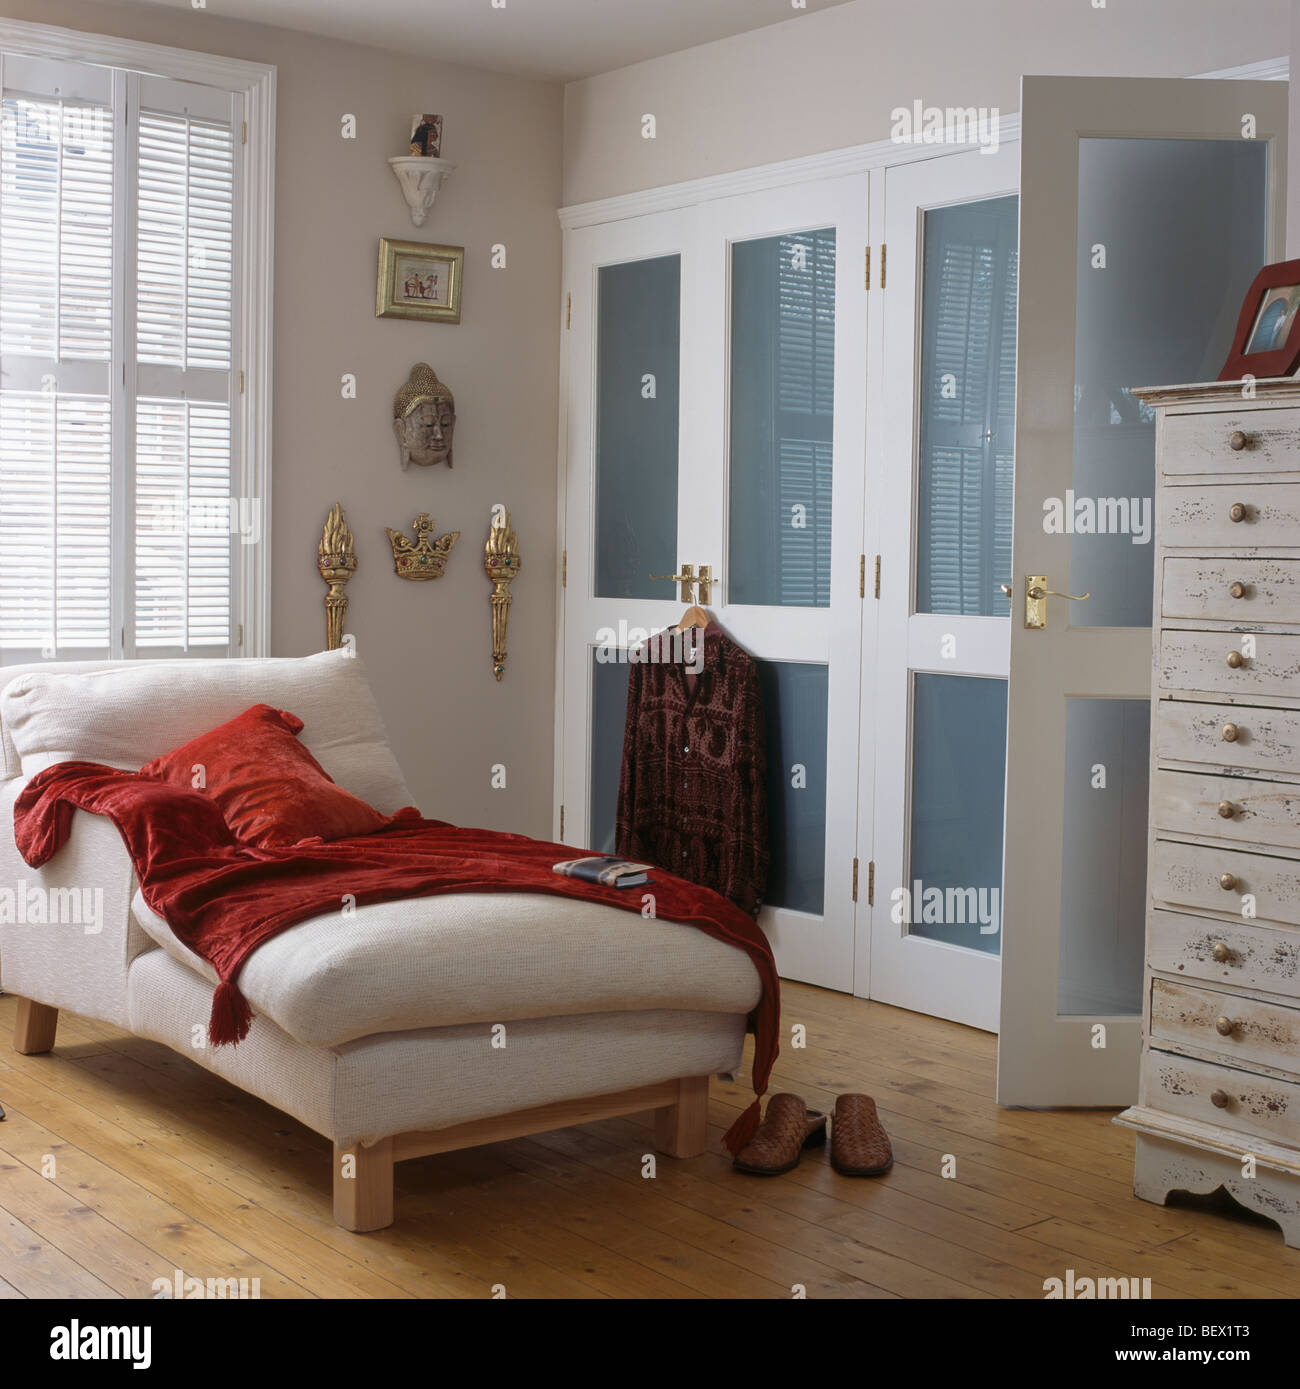 Chaise For Bedroom. Red velvet throw on white chaise longue in townhouse bedroom with  blue fitted wardrobe and wooden flooring